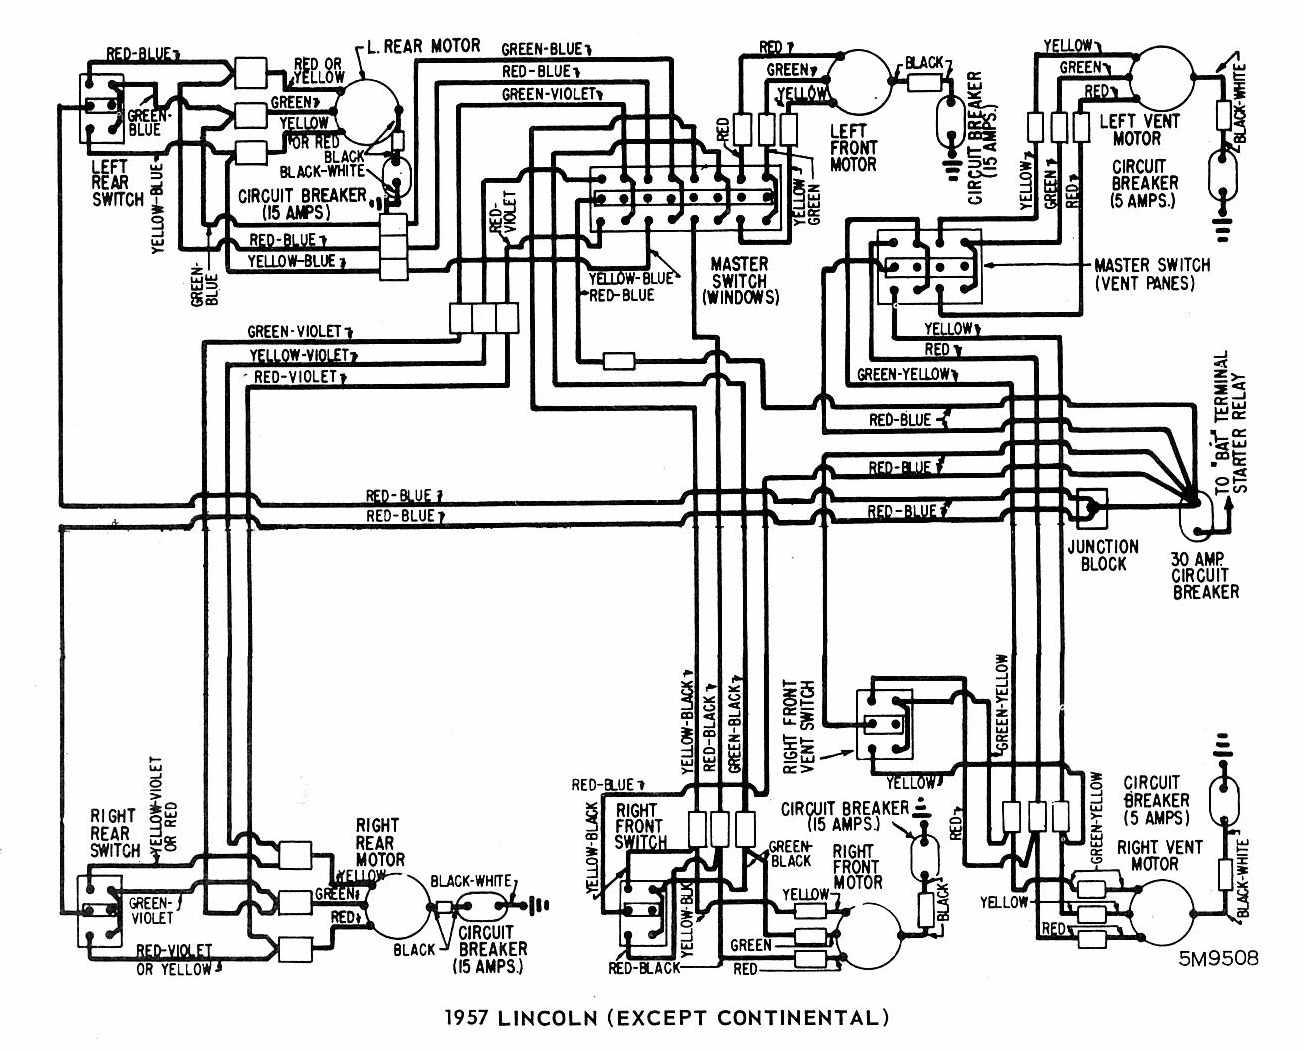 Sa200 Wiring Diagram - lincoln sa200 wiring diagrams auto